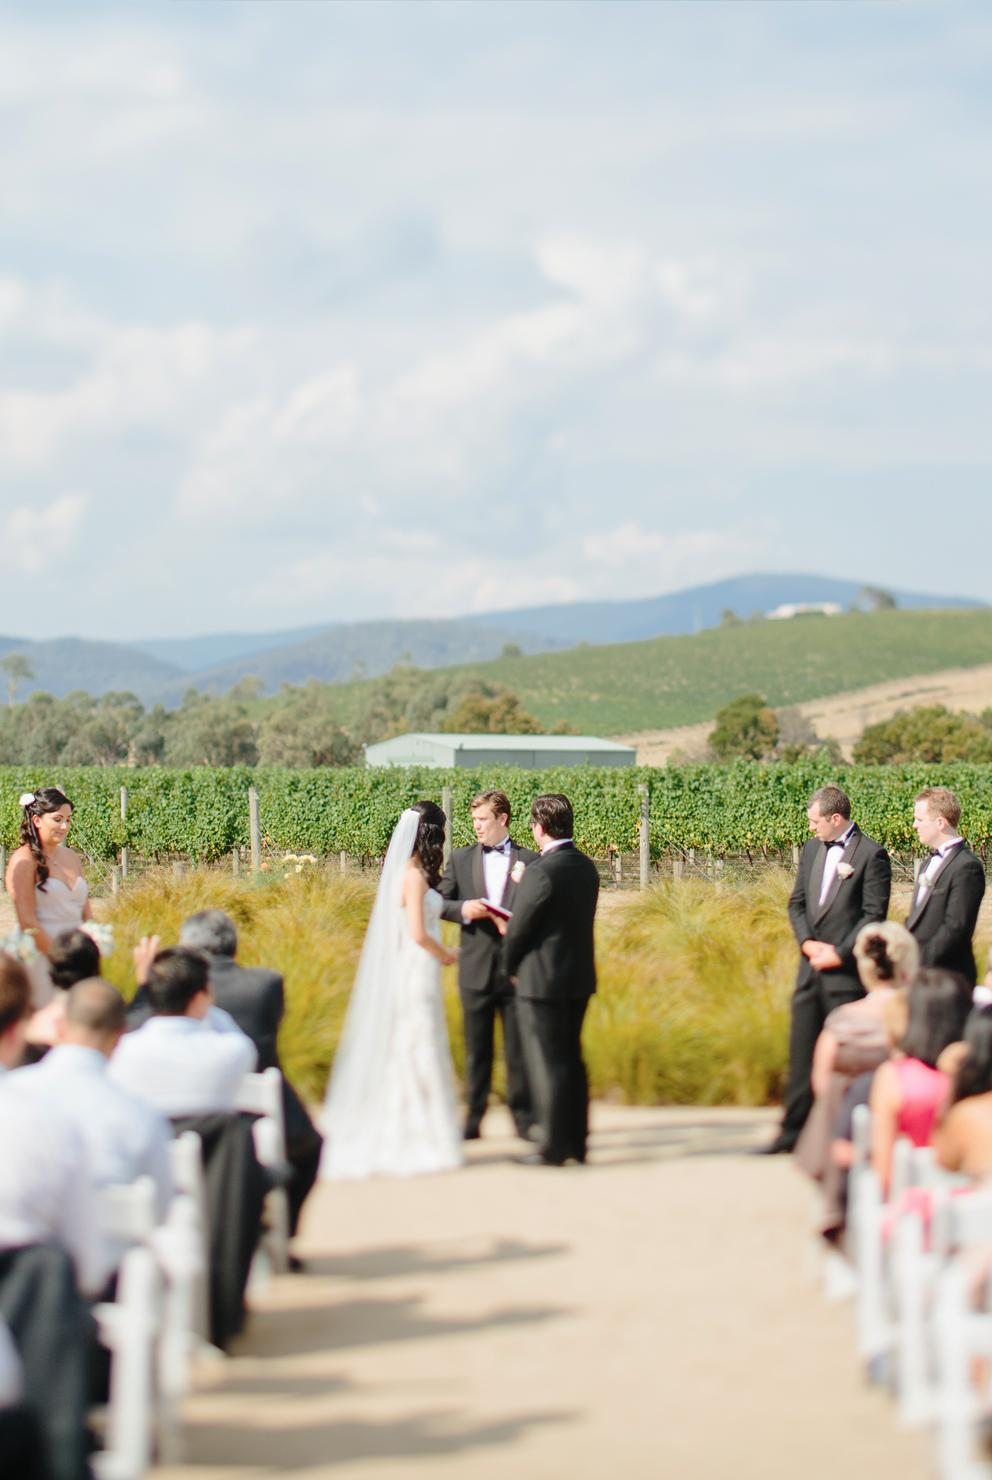 Yarra Valley Restaurants-Divino Ristorante-Wedding celebration